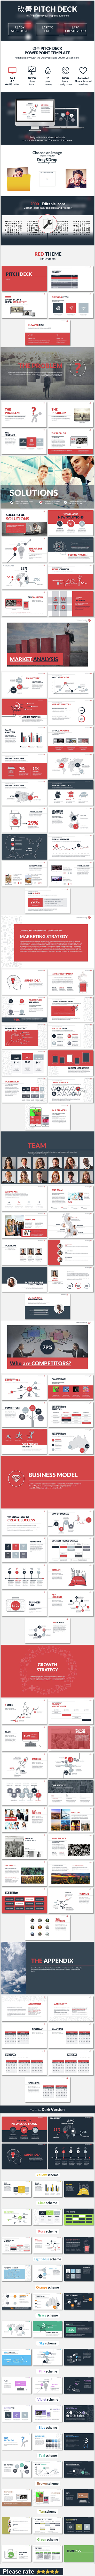 Boost Pitch Deck Presentation Template - Business PowerPoint Templates